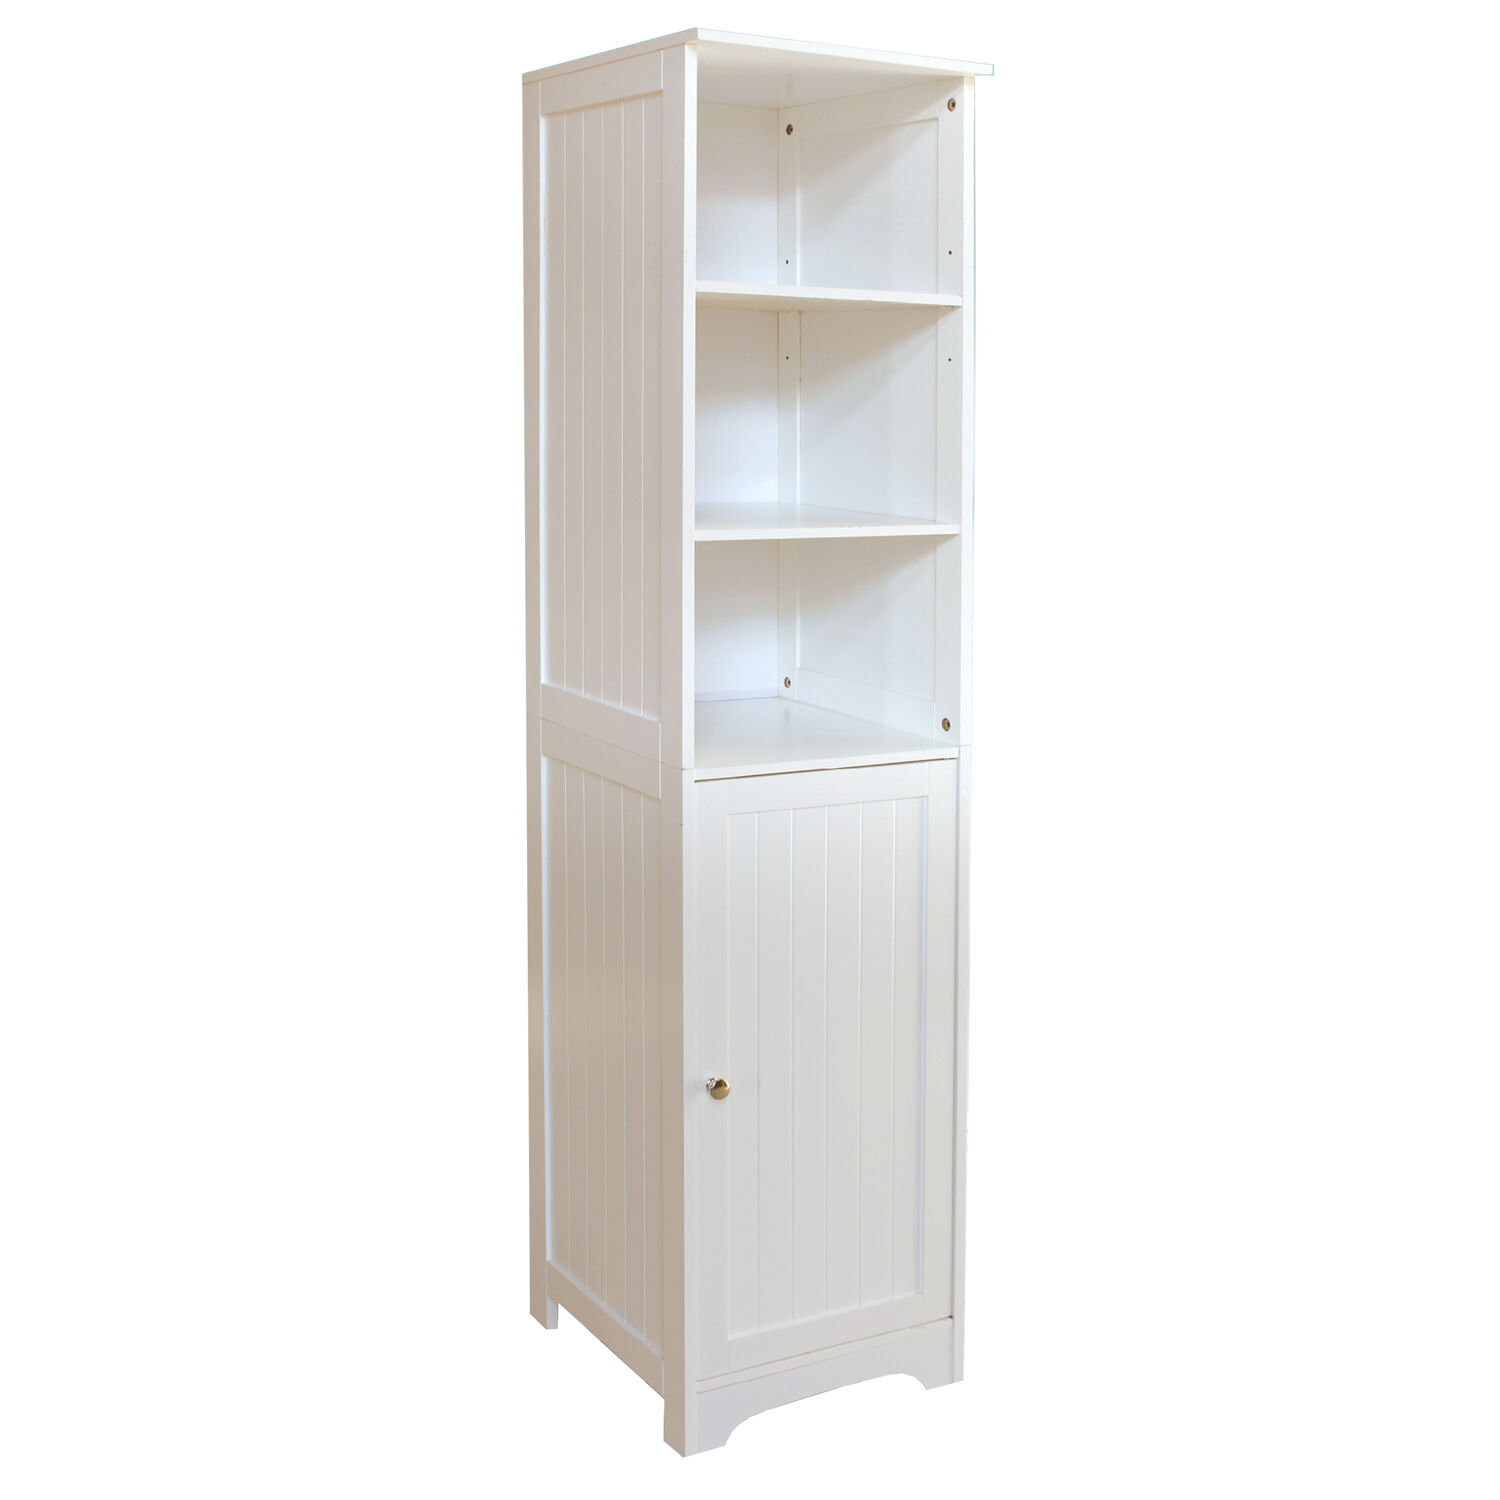 Vermont Bathroom Tall Cabinet  sc 1 st  Homestore and More & Bathroom Storage \u0026 Fittings - Home Store + More